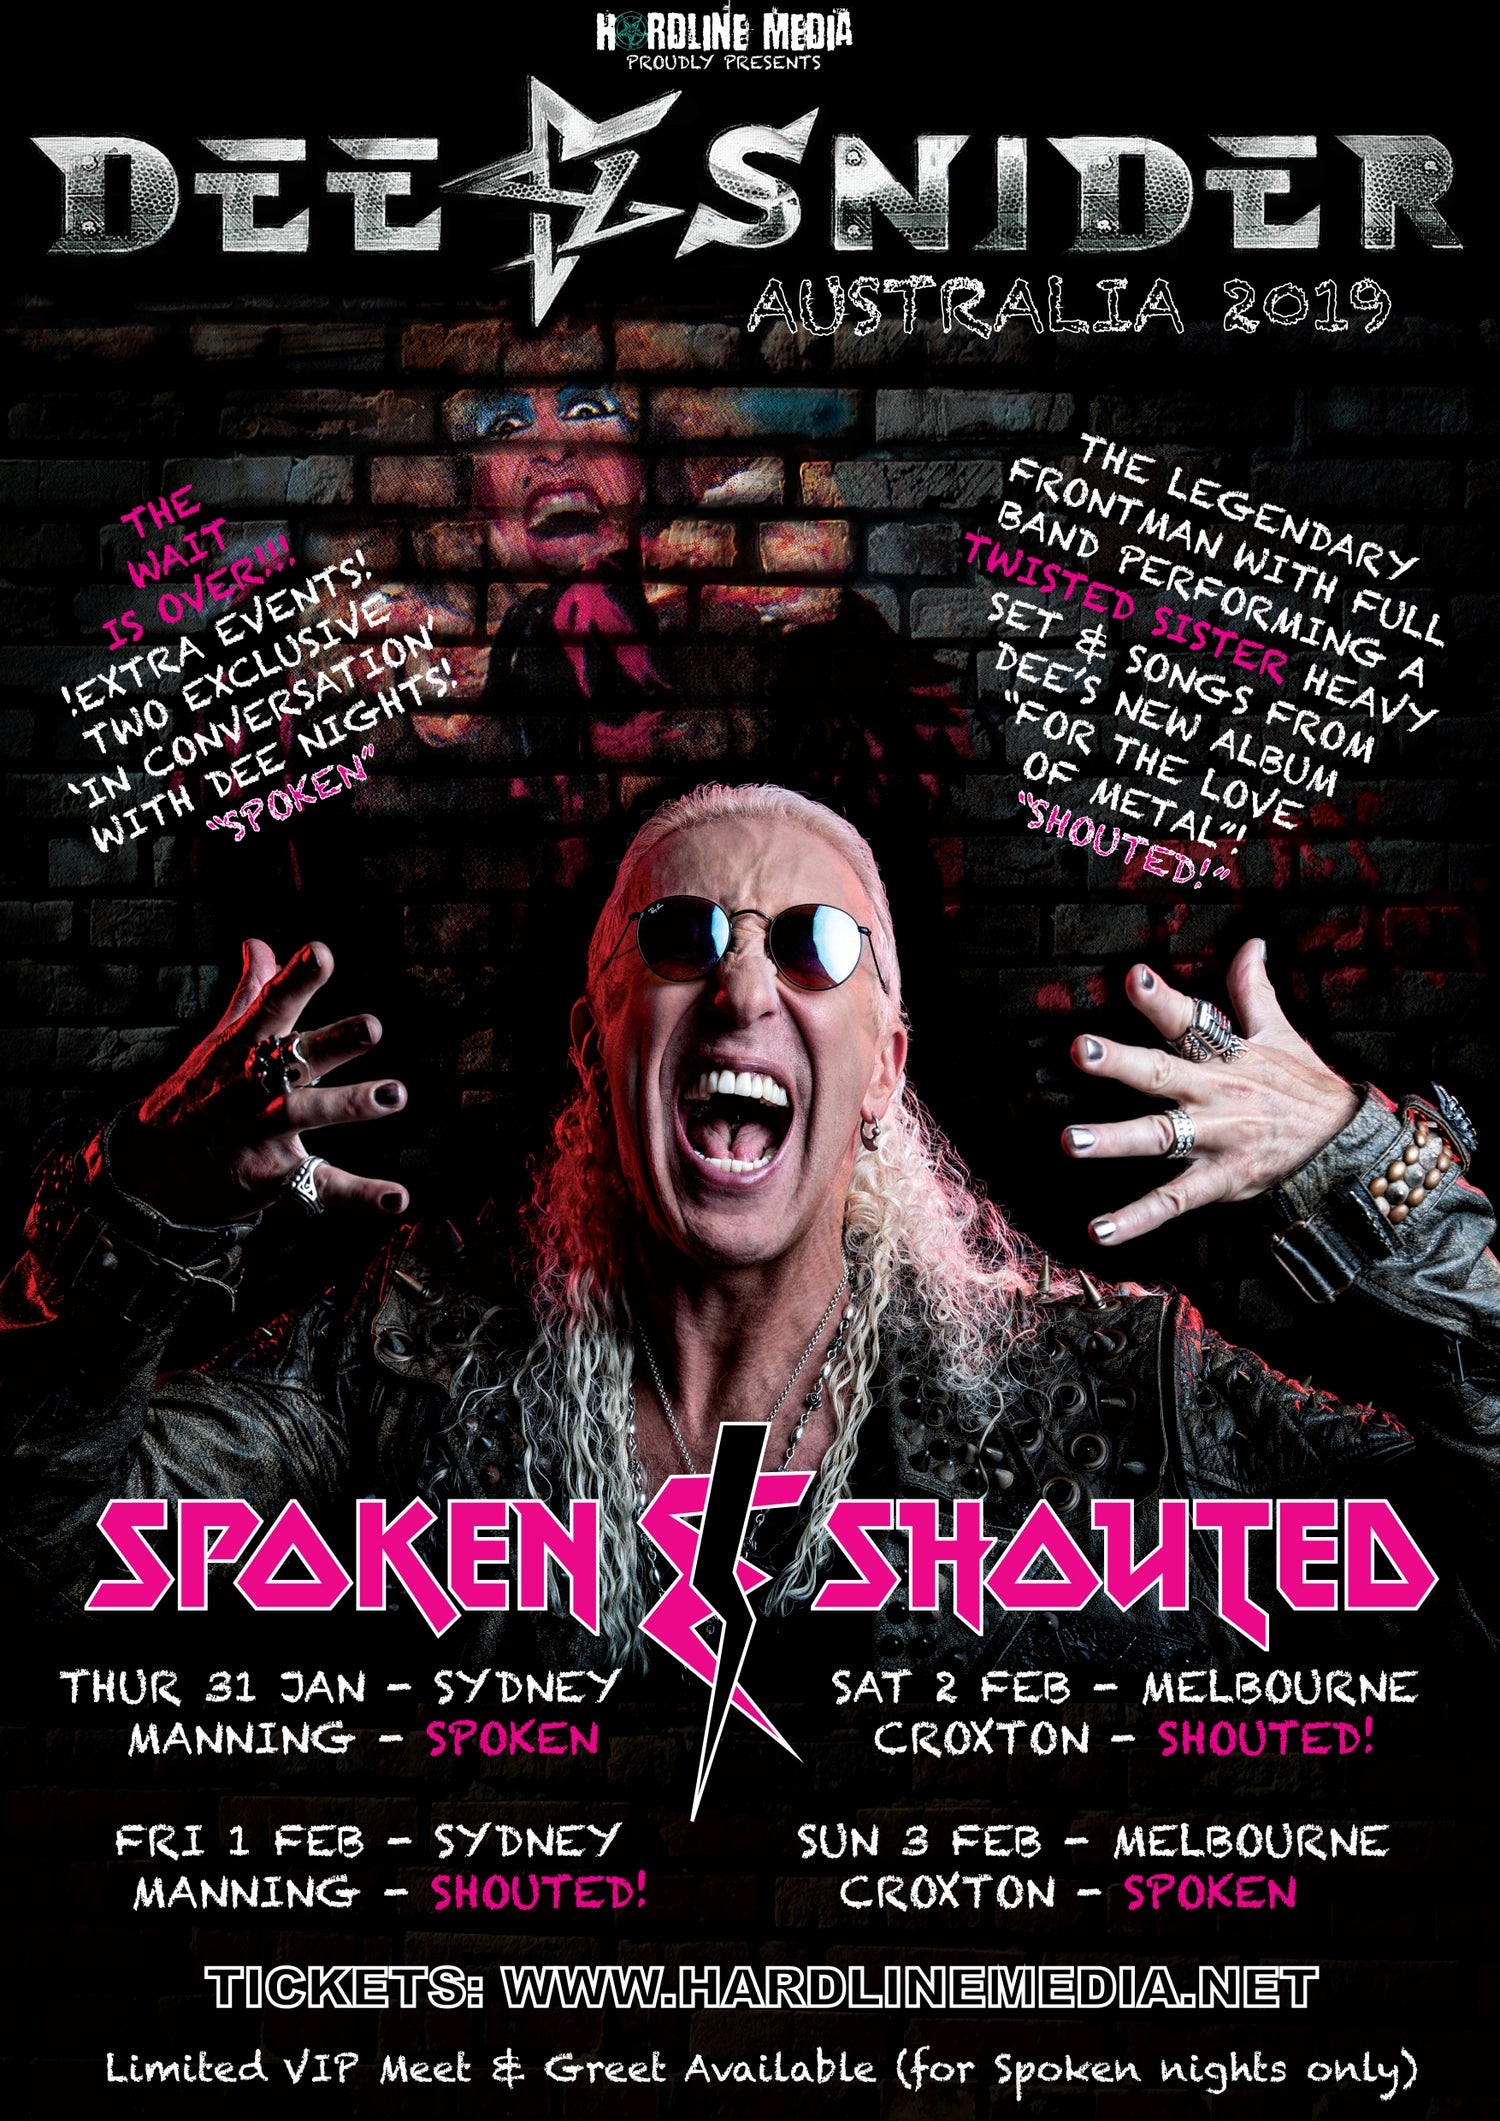 Image of GO TO OZTIX!!! DEE SNIDER (GA) SPOKEN - MELBOURNE, CROXTON - SUN 3 FEB - TICKETS THROUGH OZTIX!!!